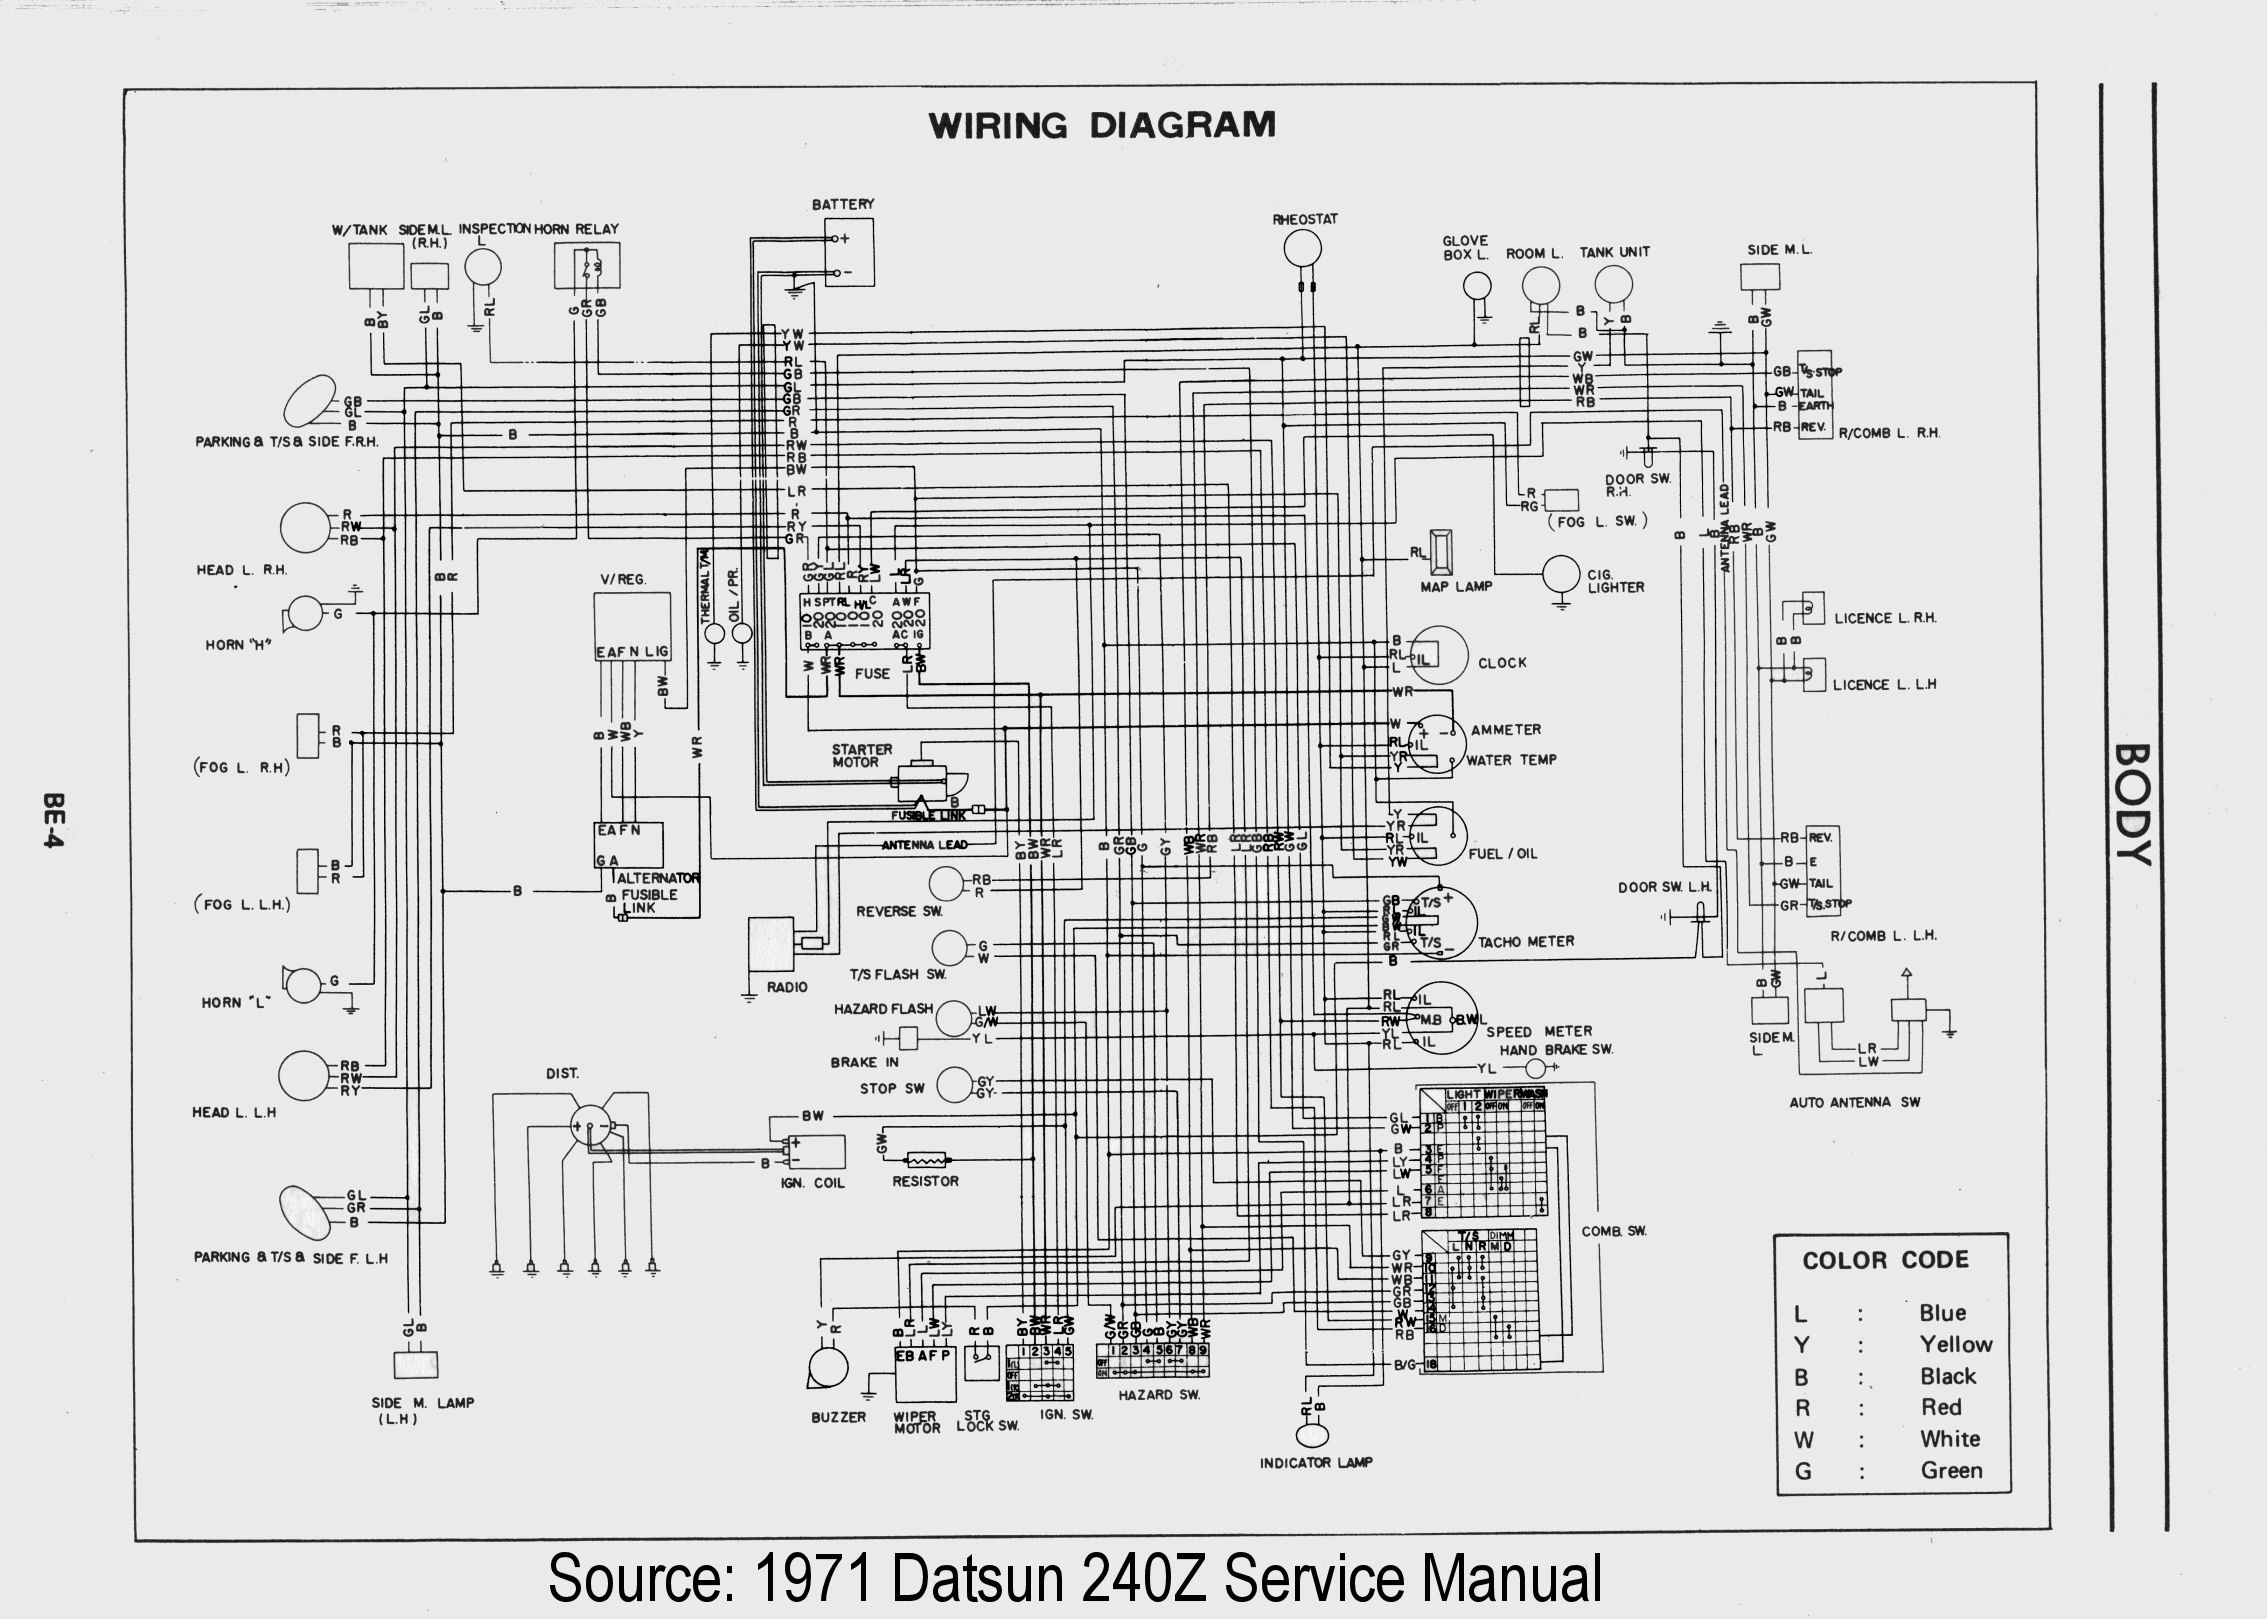 generic wiring troubleshooting checklist woodworkerb rh woodworkerb com 240z wiring harness grommet 240z wiring harness diagram